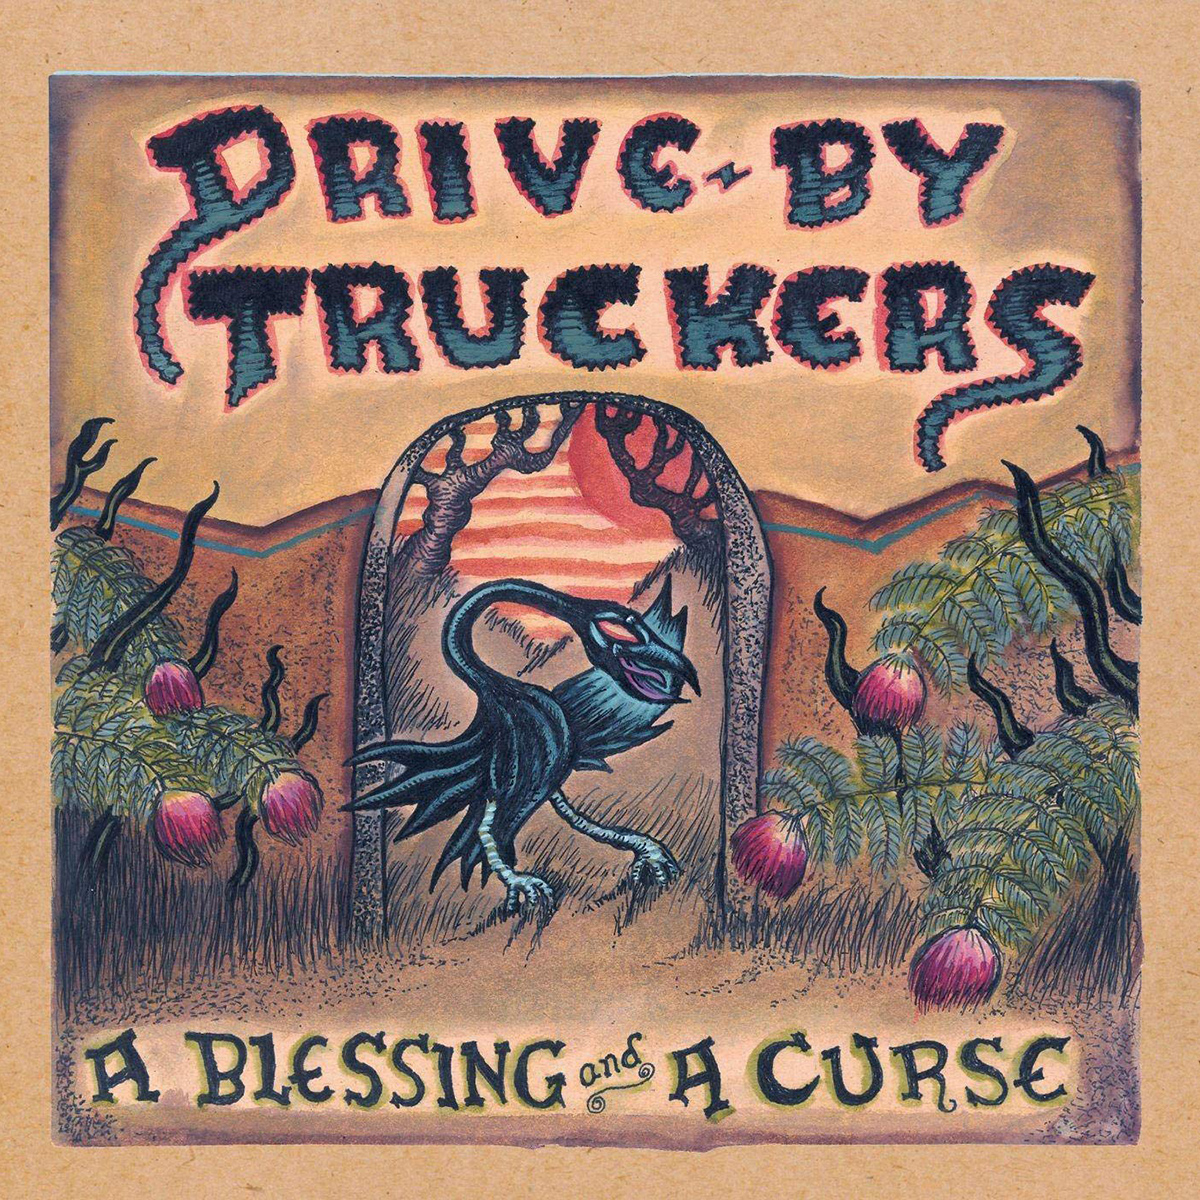 Drive-By Truckers, A Blessing and a Curse